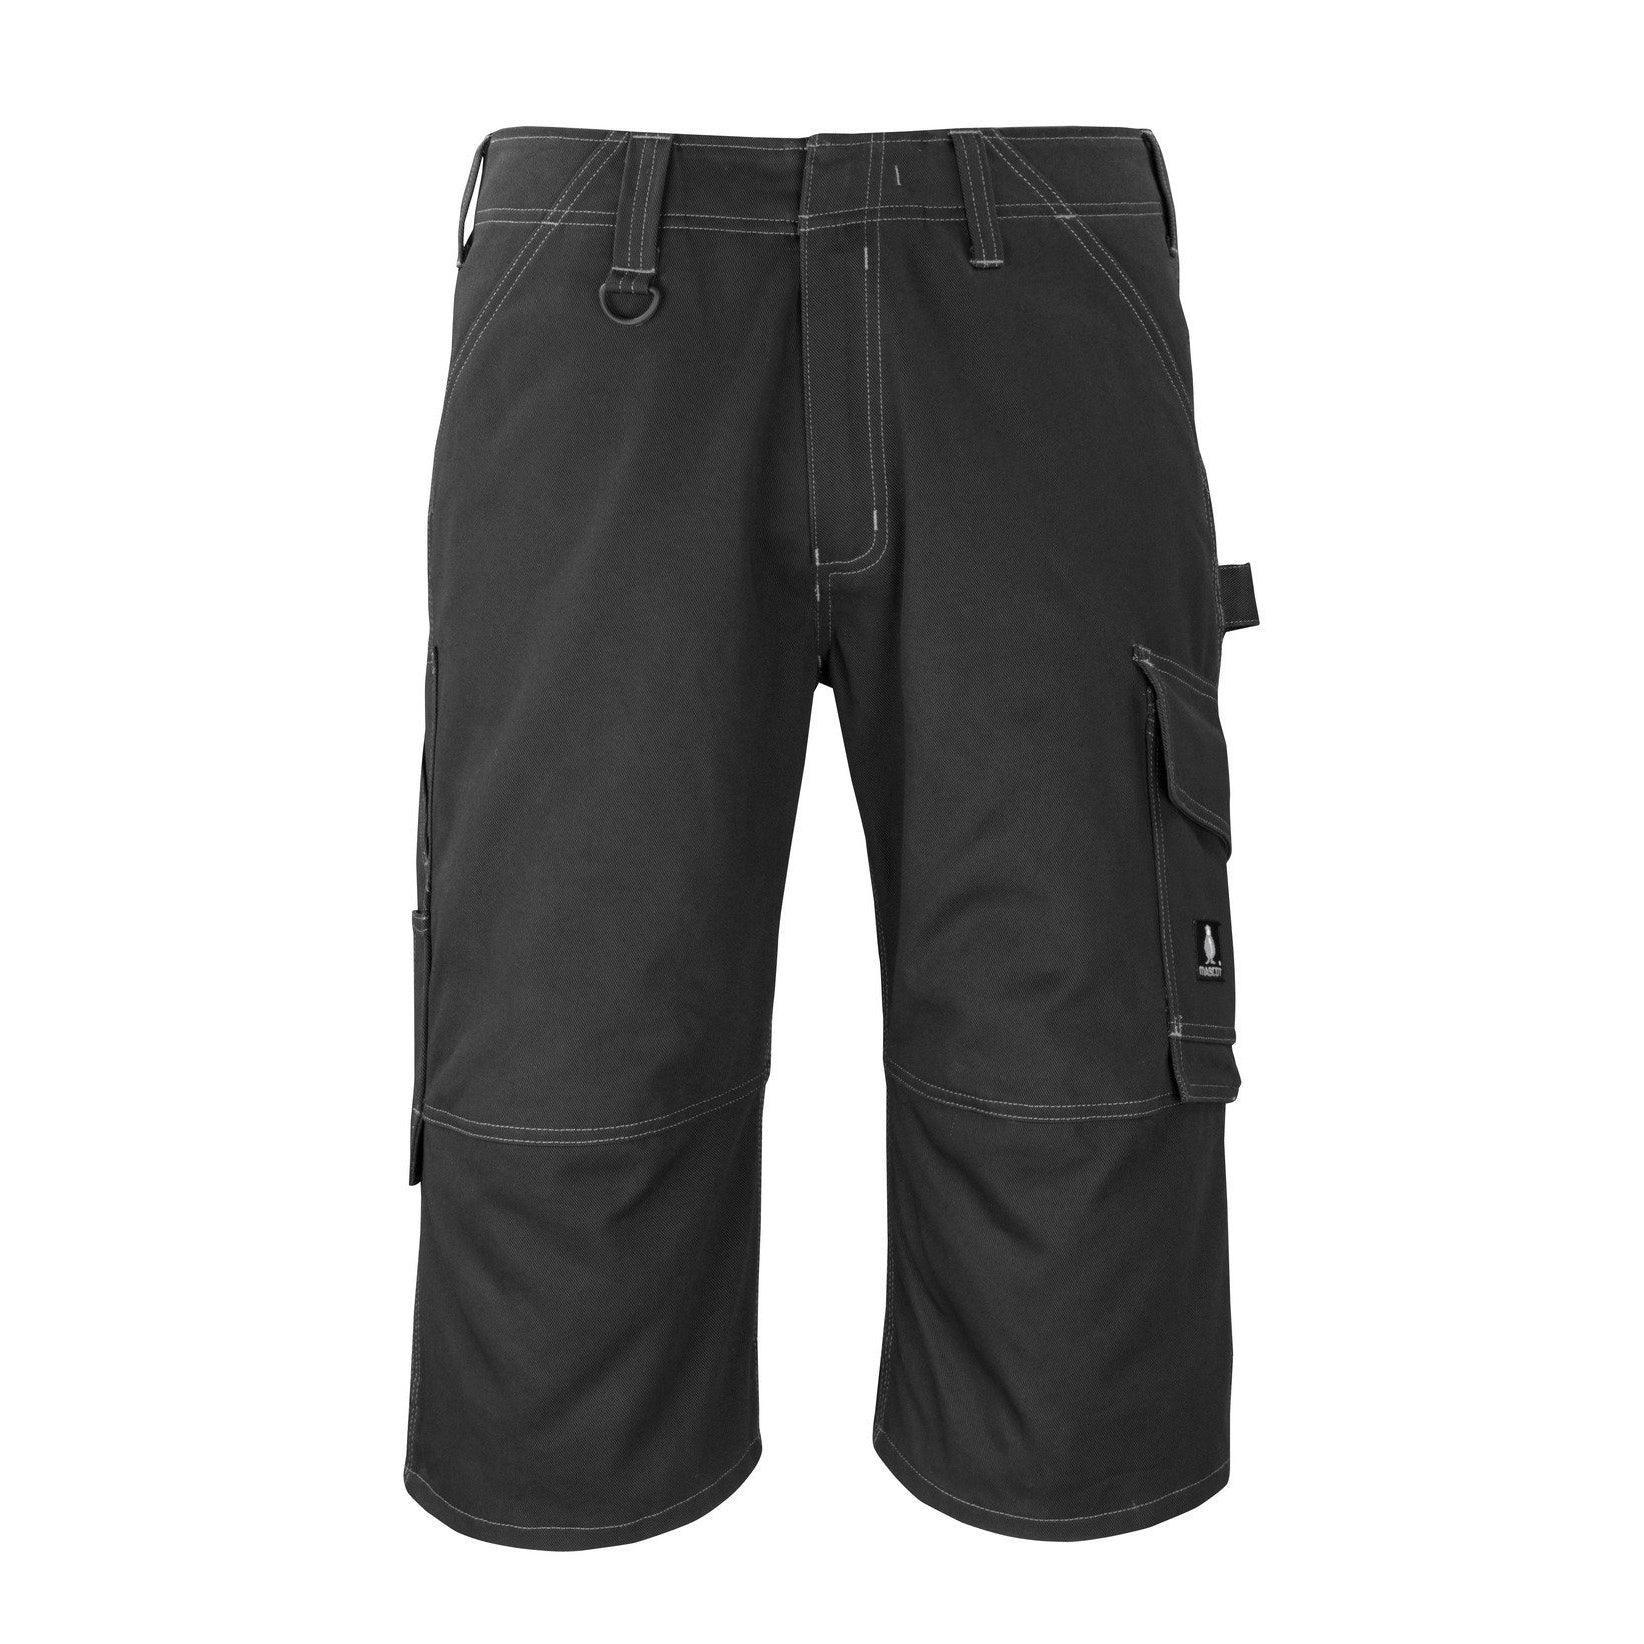 Mascot Hartford Industry ¾ Length Trousers